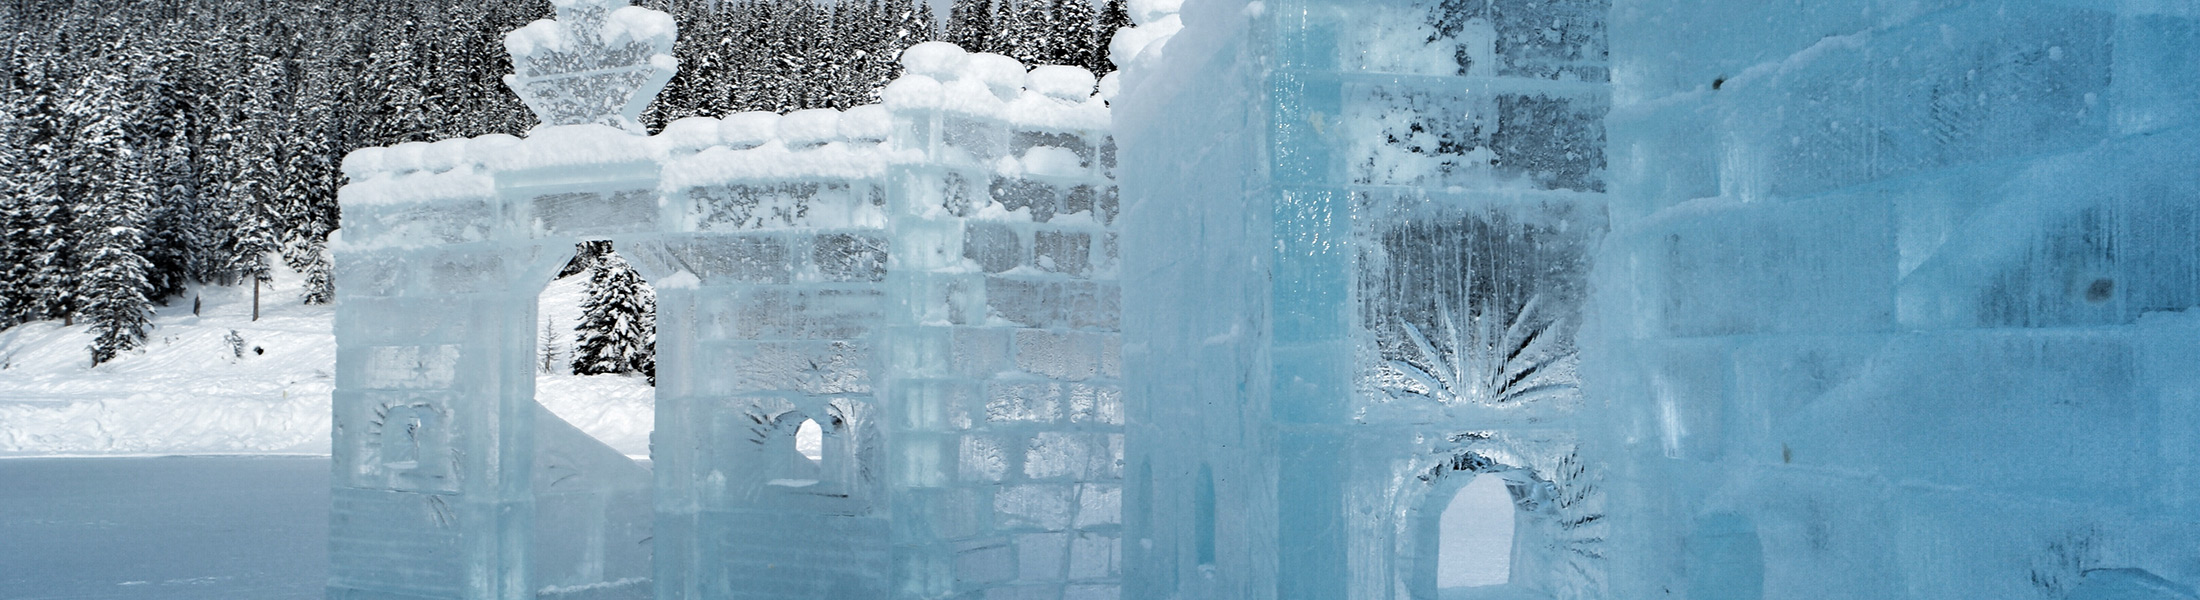 Ice sculptures on Lake Louise